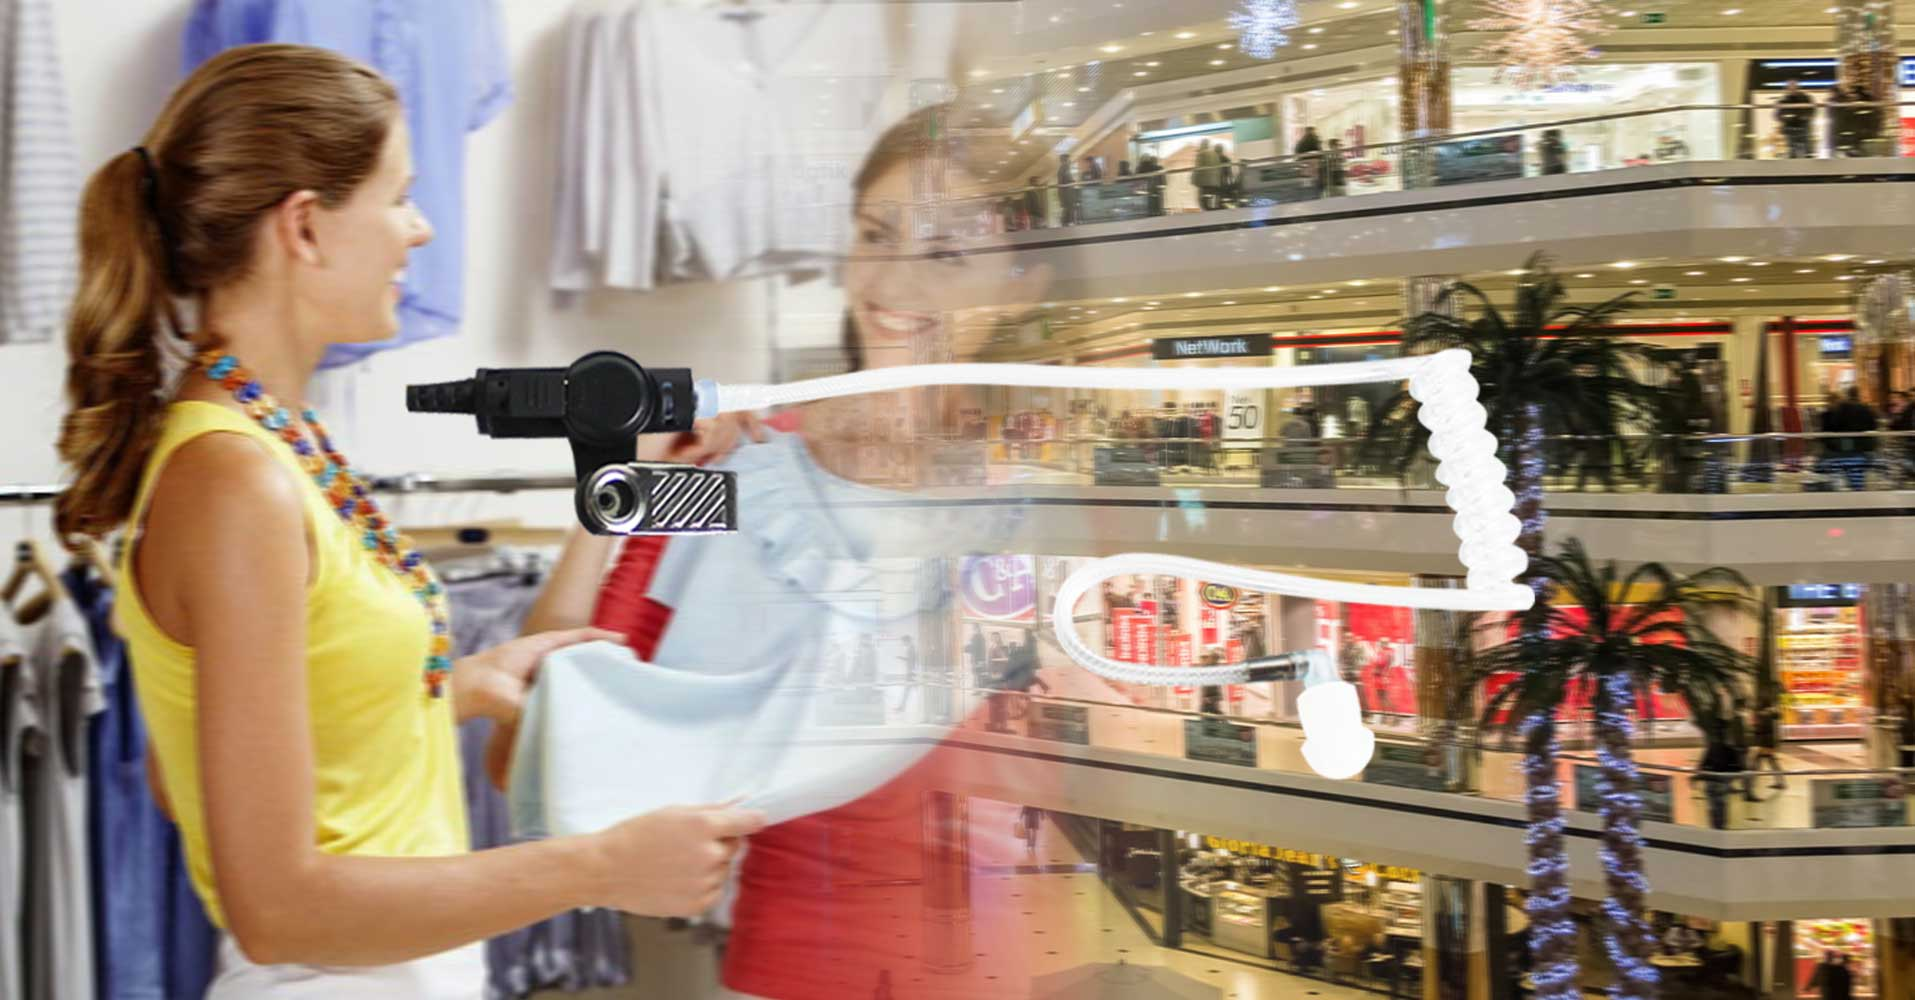 Clear Tube Radio Earpiece for Retail Staff